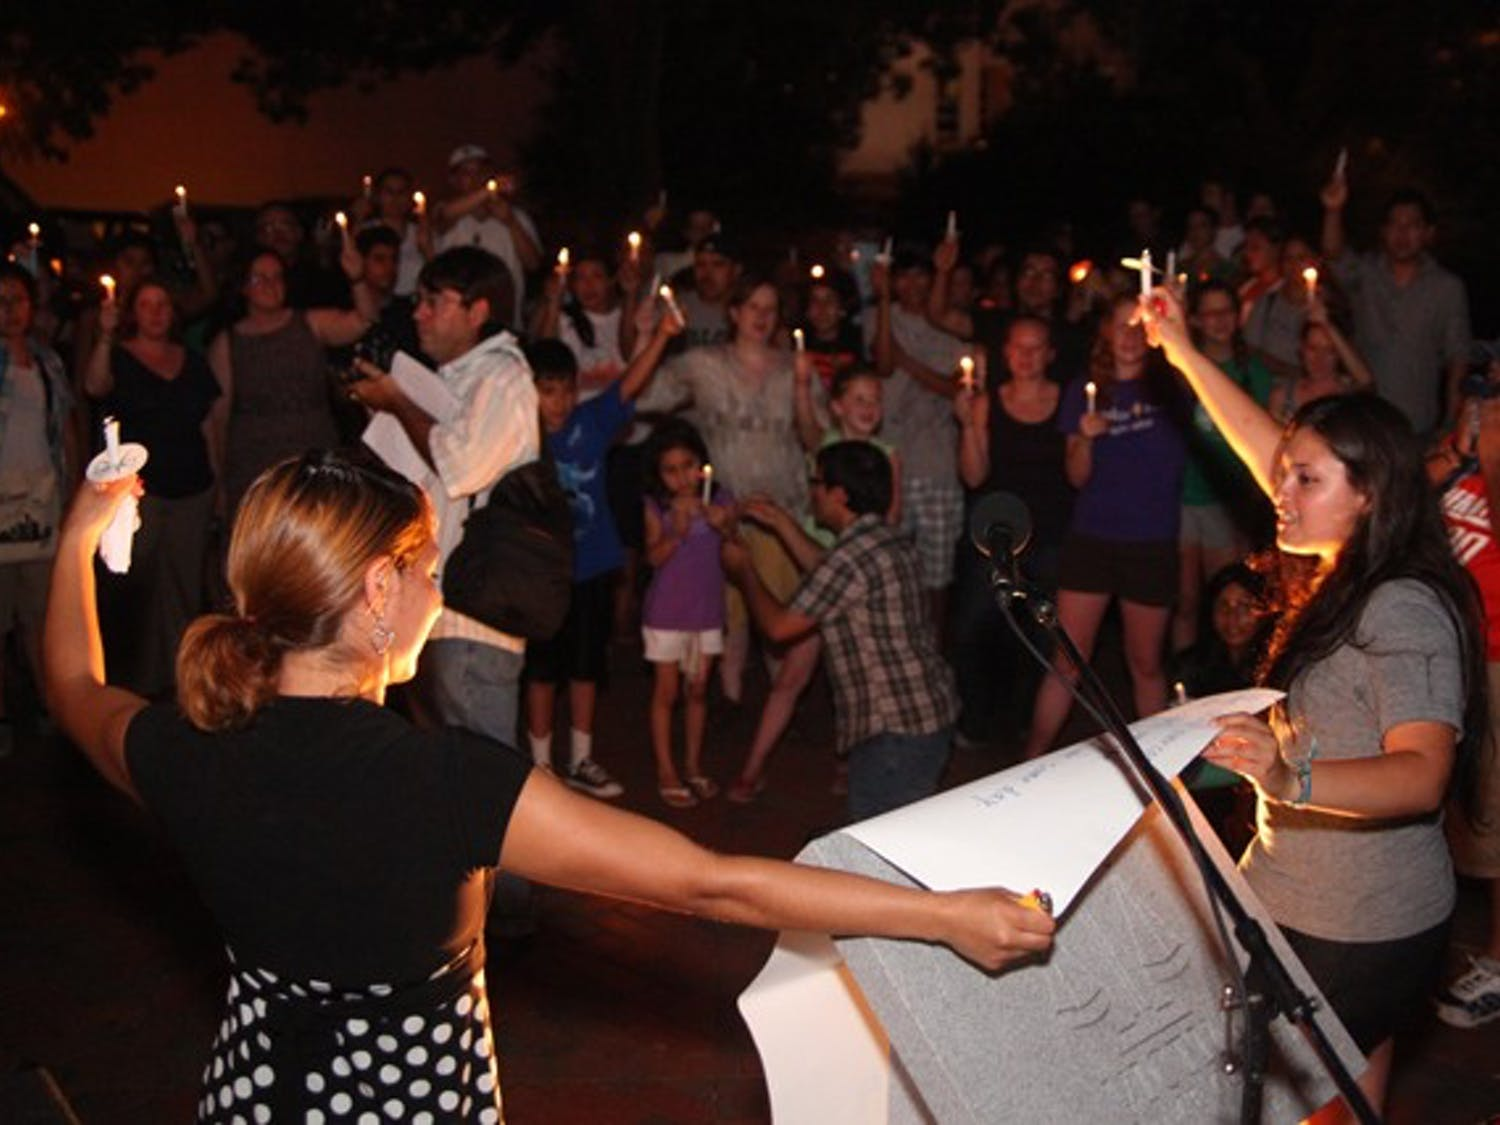 """Rosario Lopez (left) and Viridiana Martinez lead community members in singing """"We Shall Overcome"""" on Tuesday night in Raleigh. Lopez and Martinez, who are both undocumented immigrants, had just ended their 14-day hunger strike, which was raising support for the DREAM Act."""